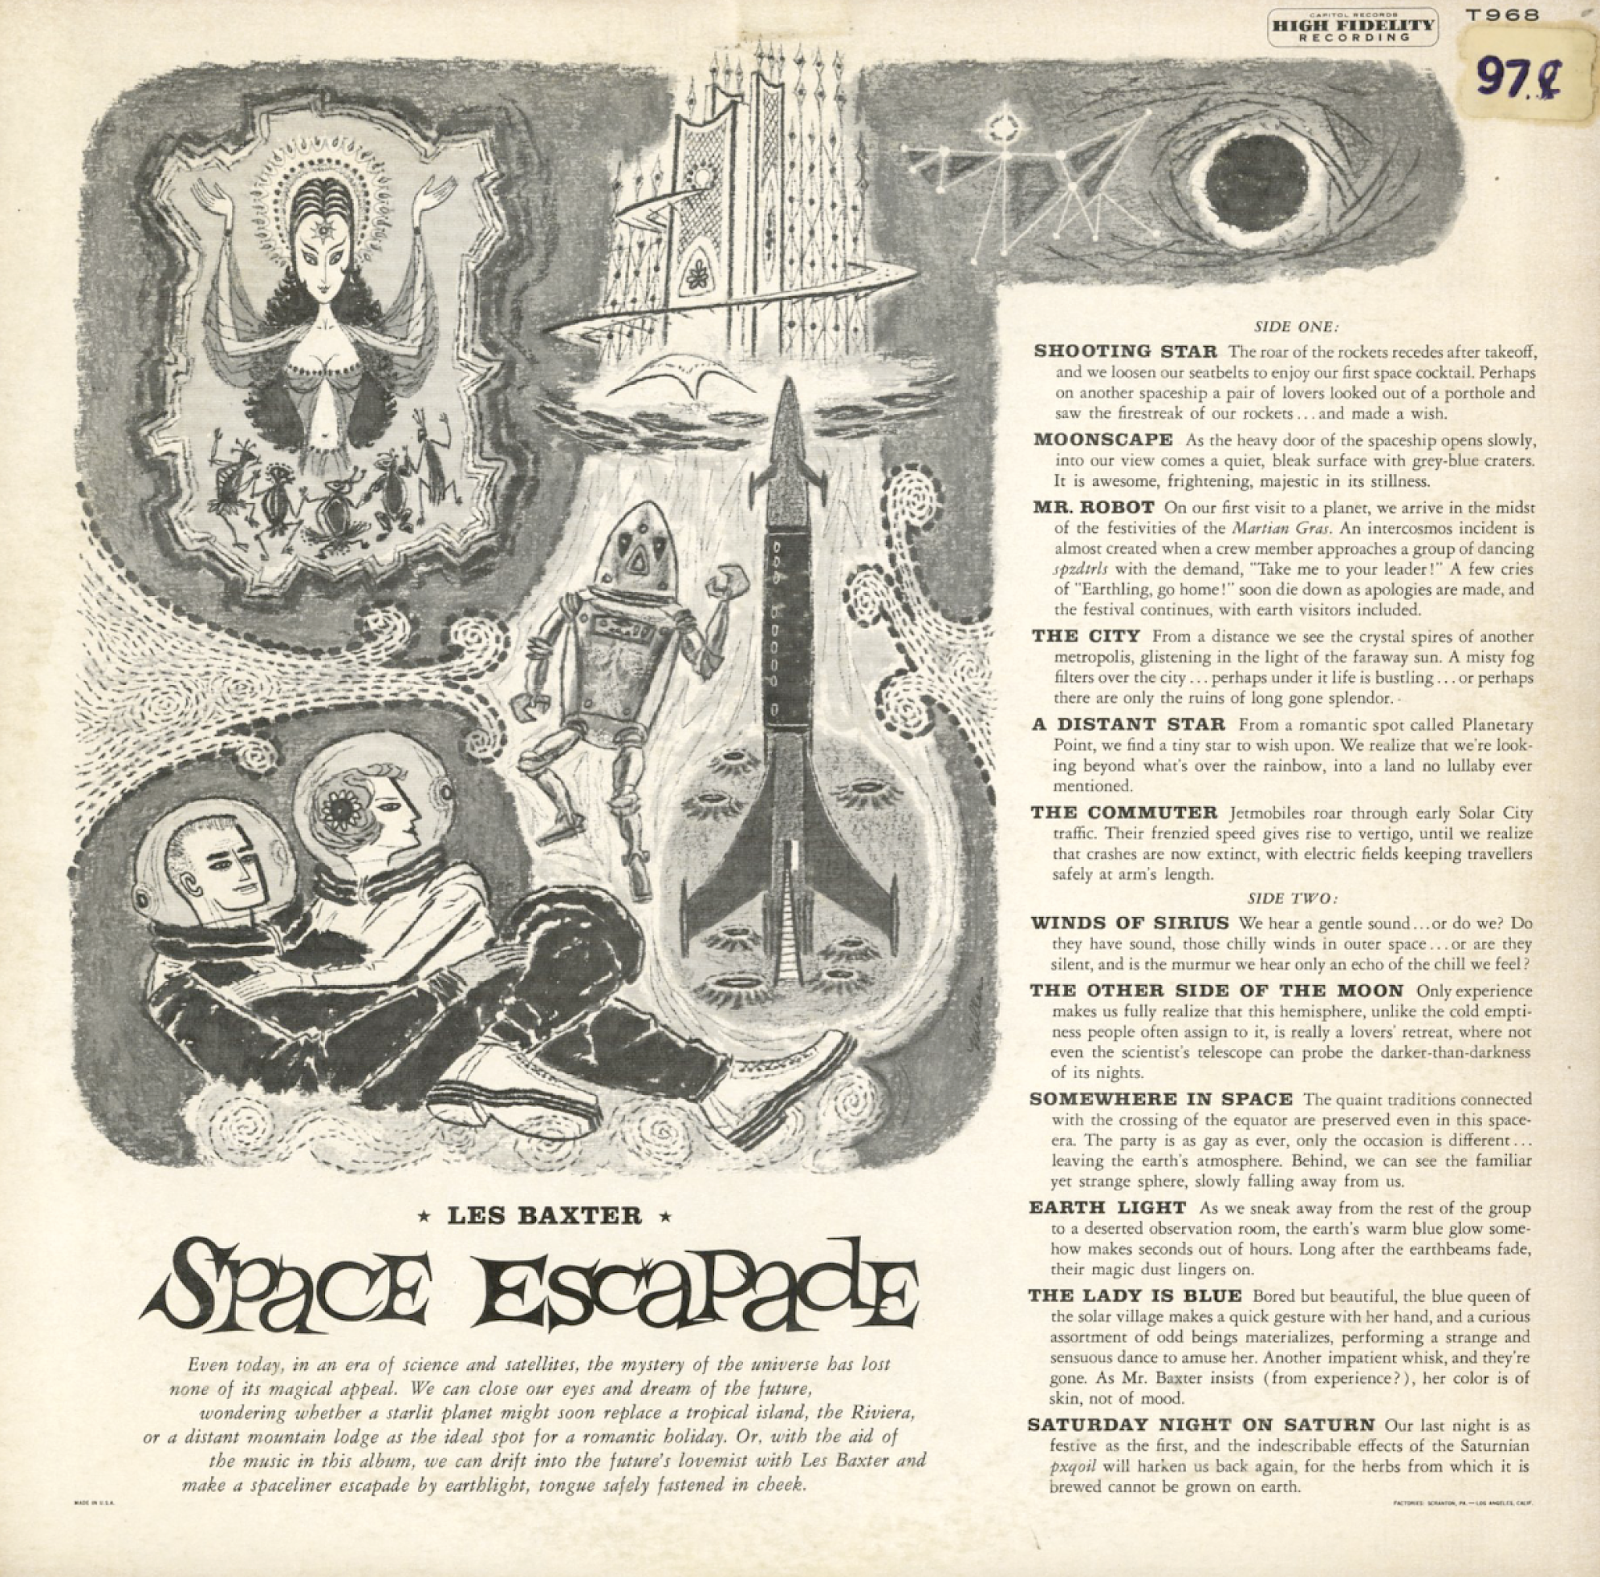 Unearthed In The Atomic Attic: Space Escapade - Les Baxter